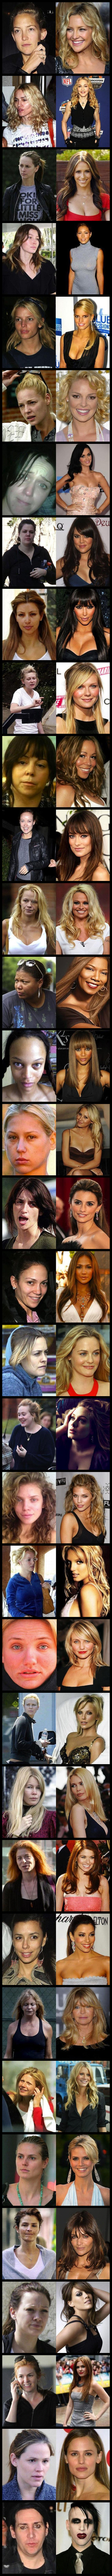 The Power Of Makeup: Celebrity Edition